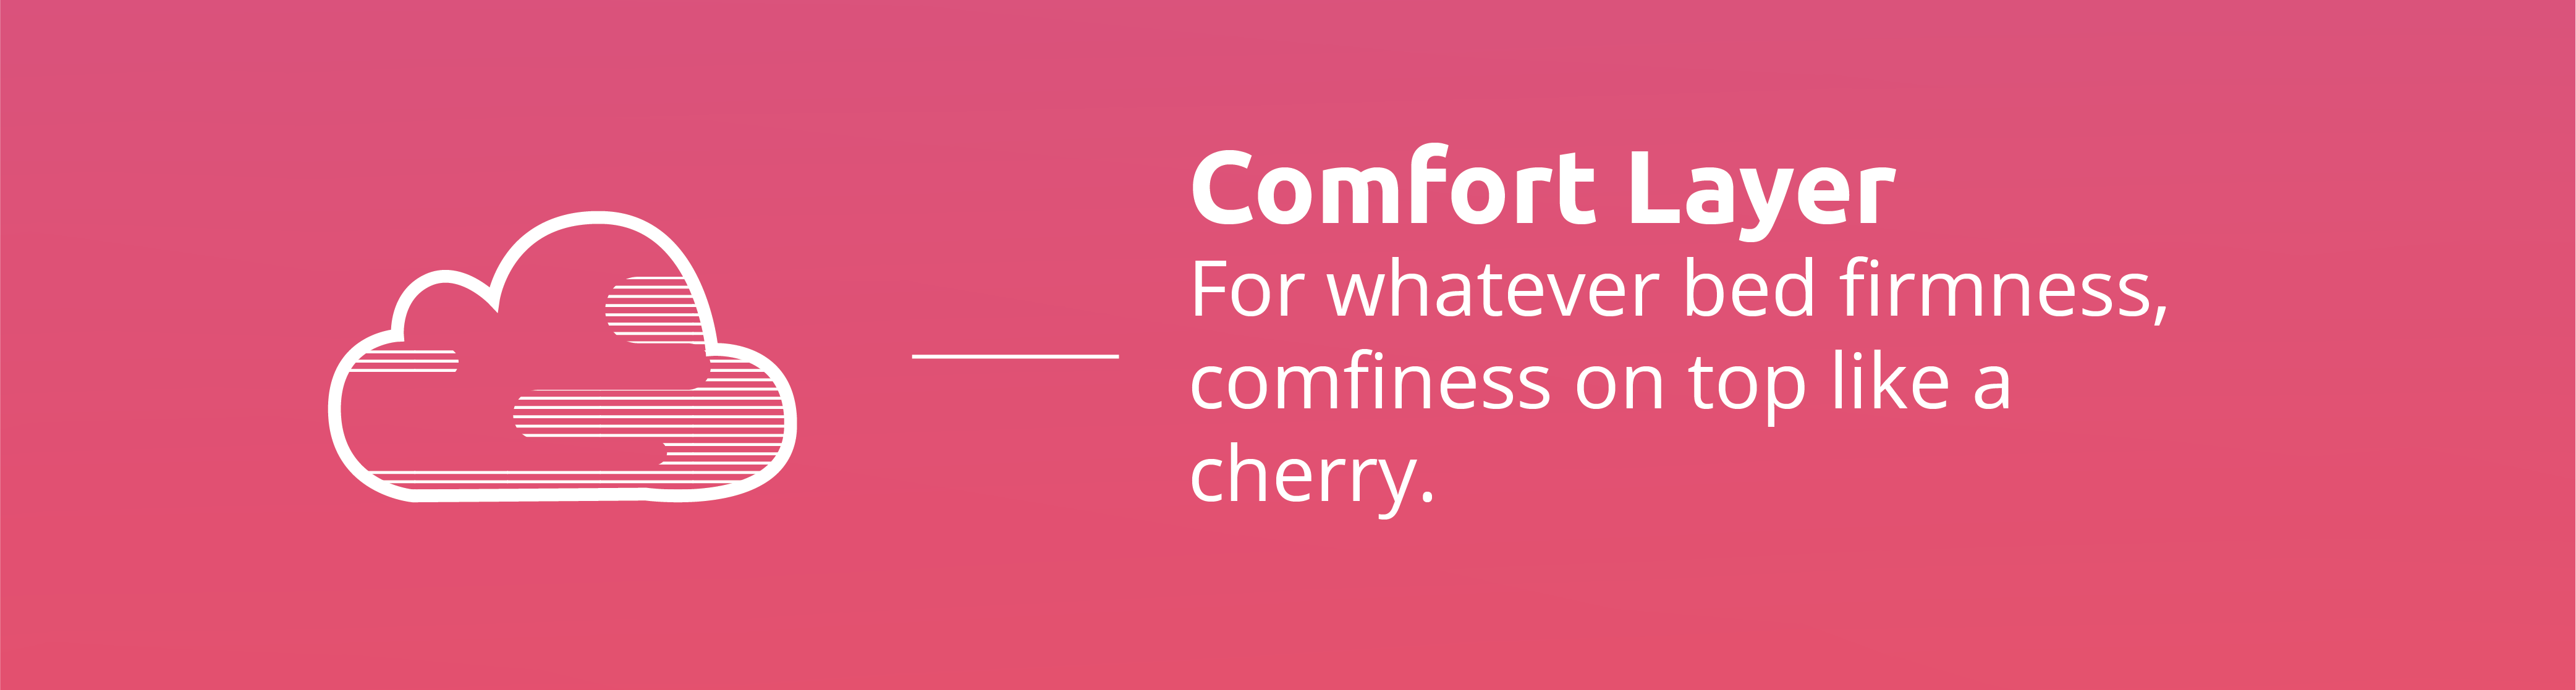 Comfort Layer In Bed Infographic